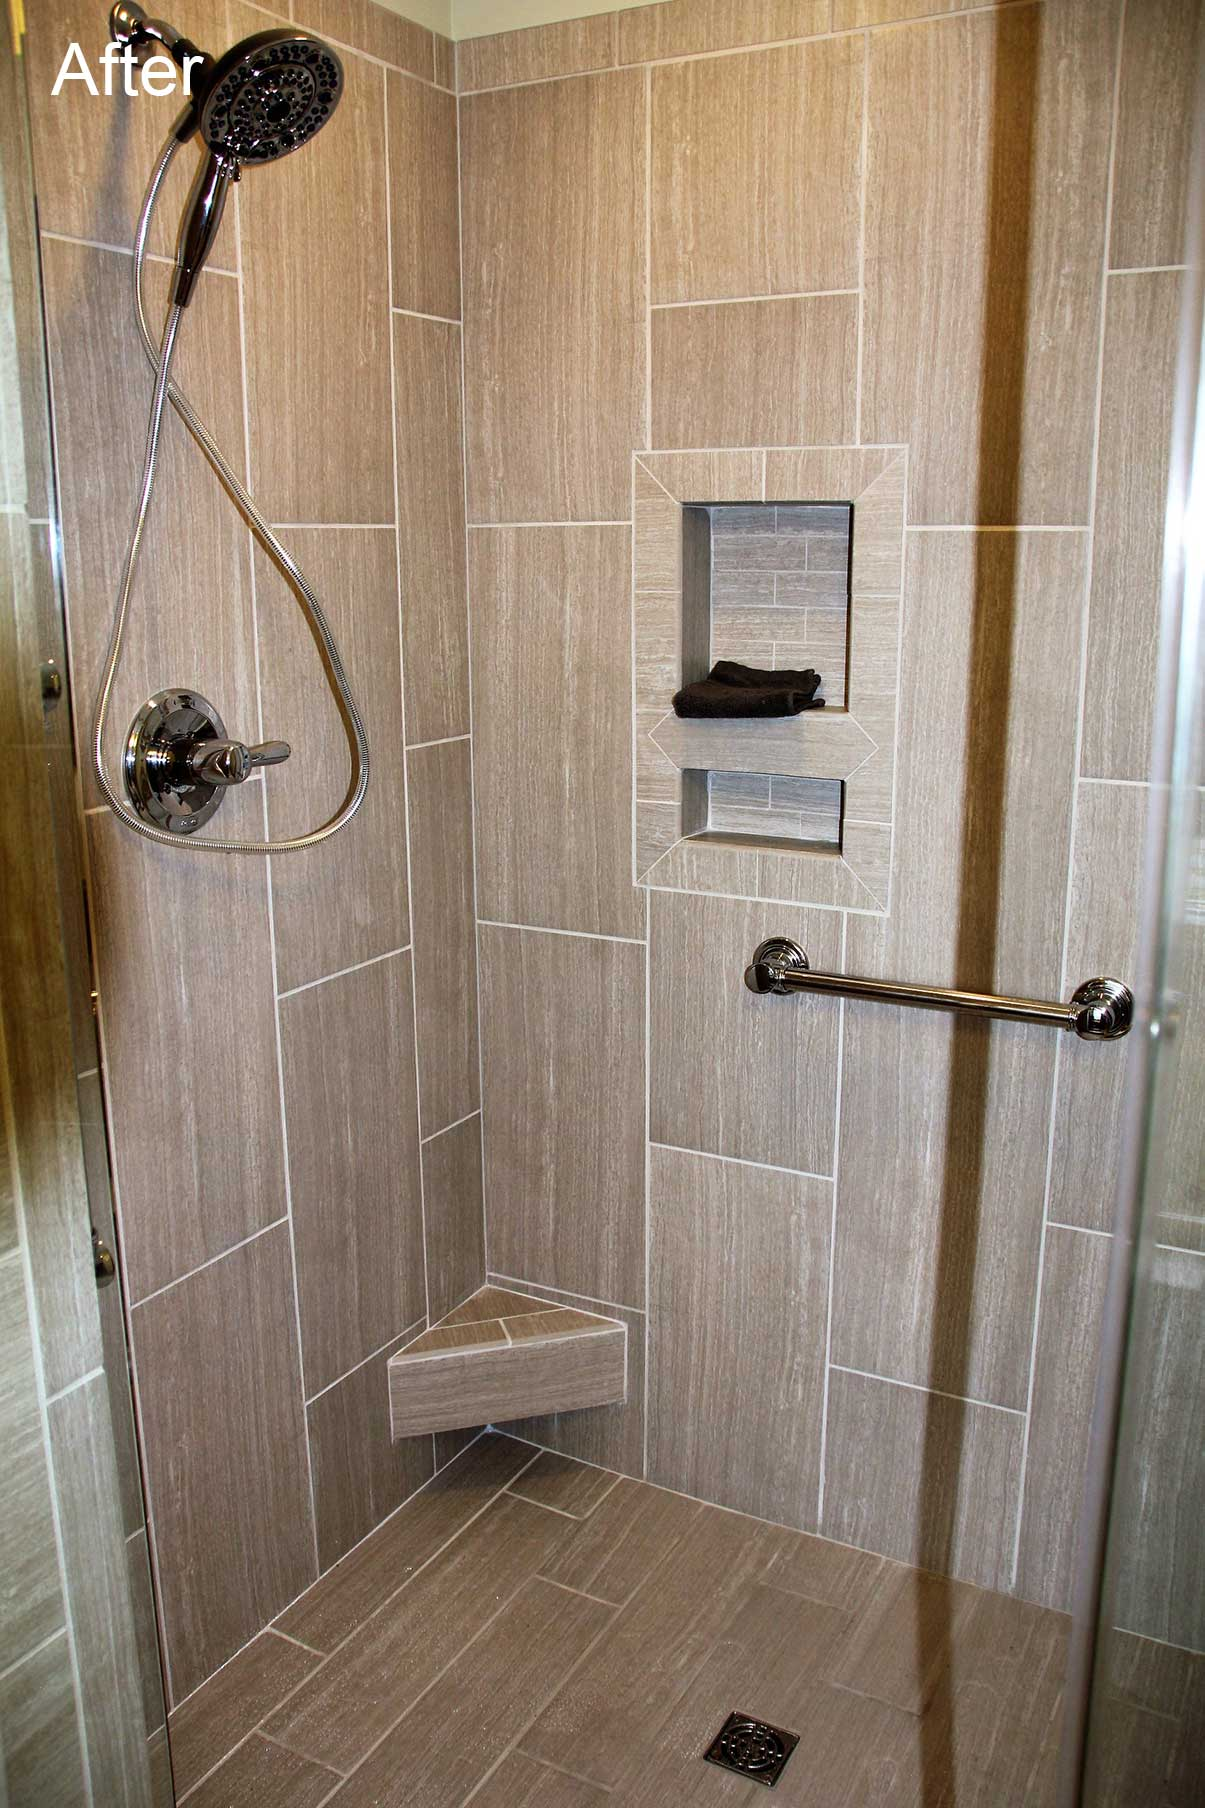 Close-up of shower interior after remodel